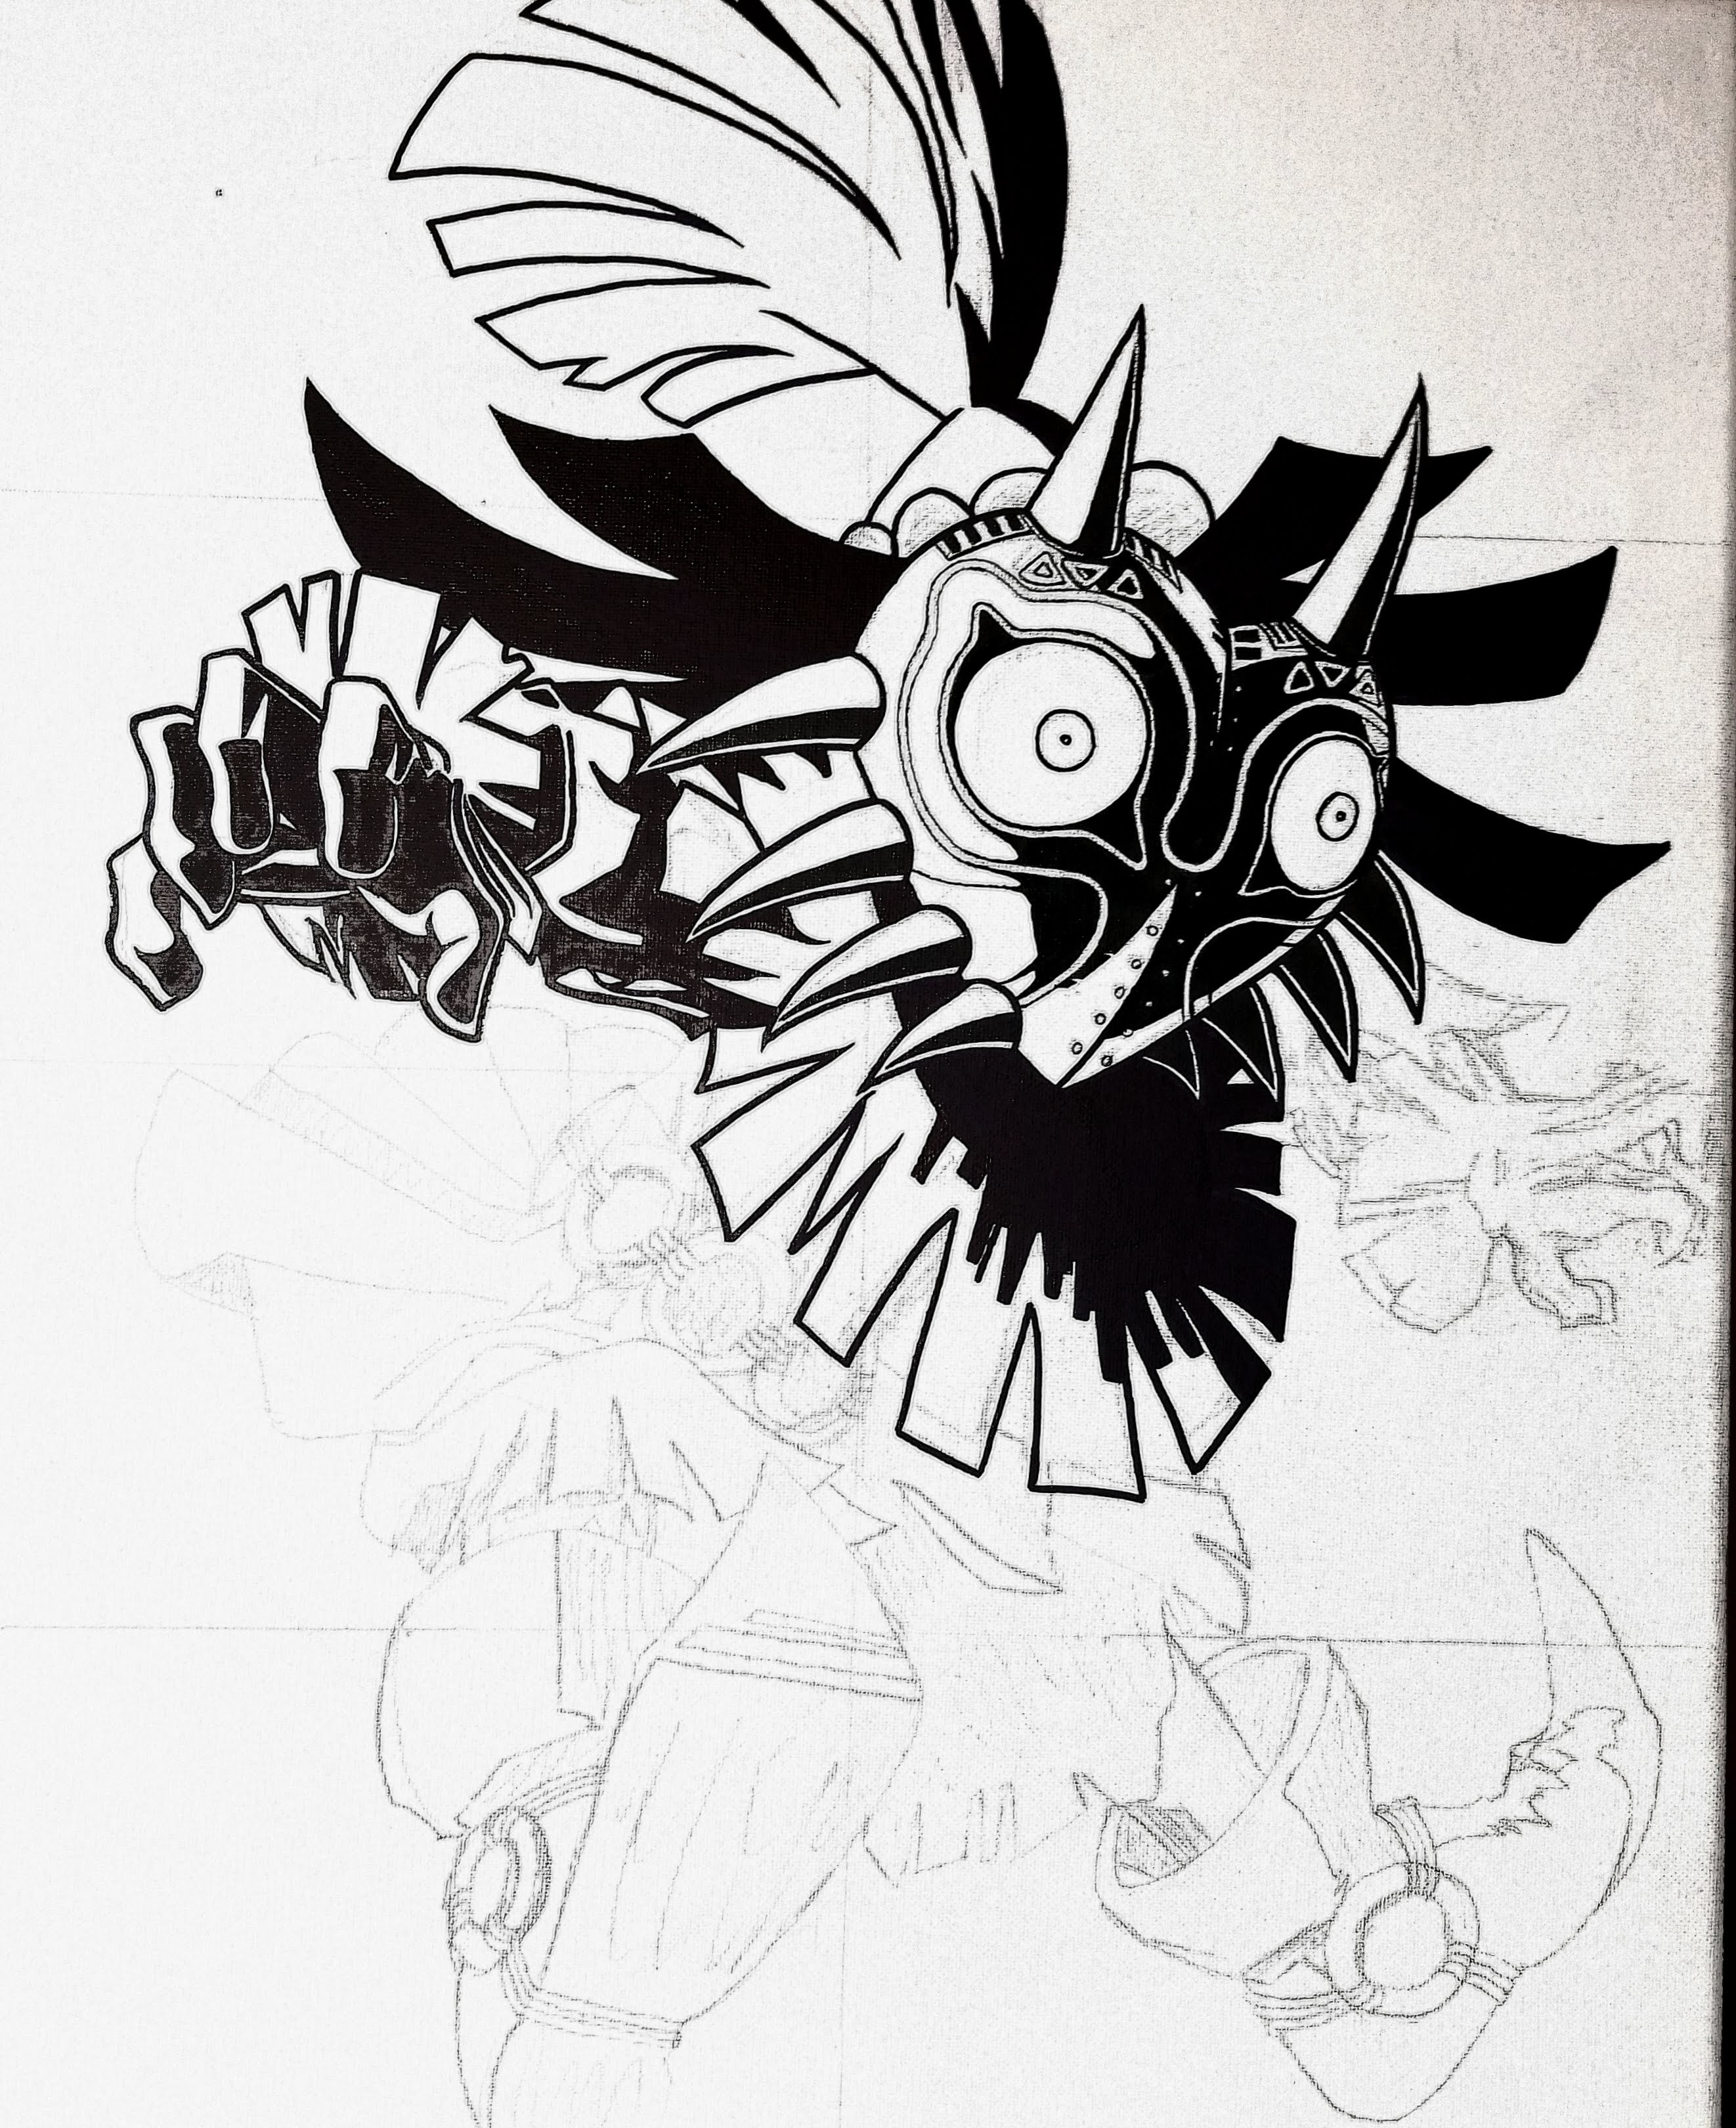 Skull Kid_Majora's Mask-16×20 Ink on Canvas